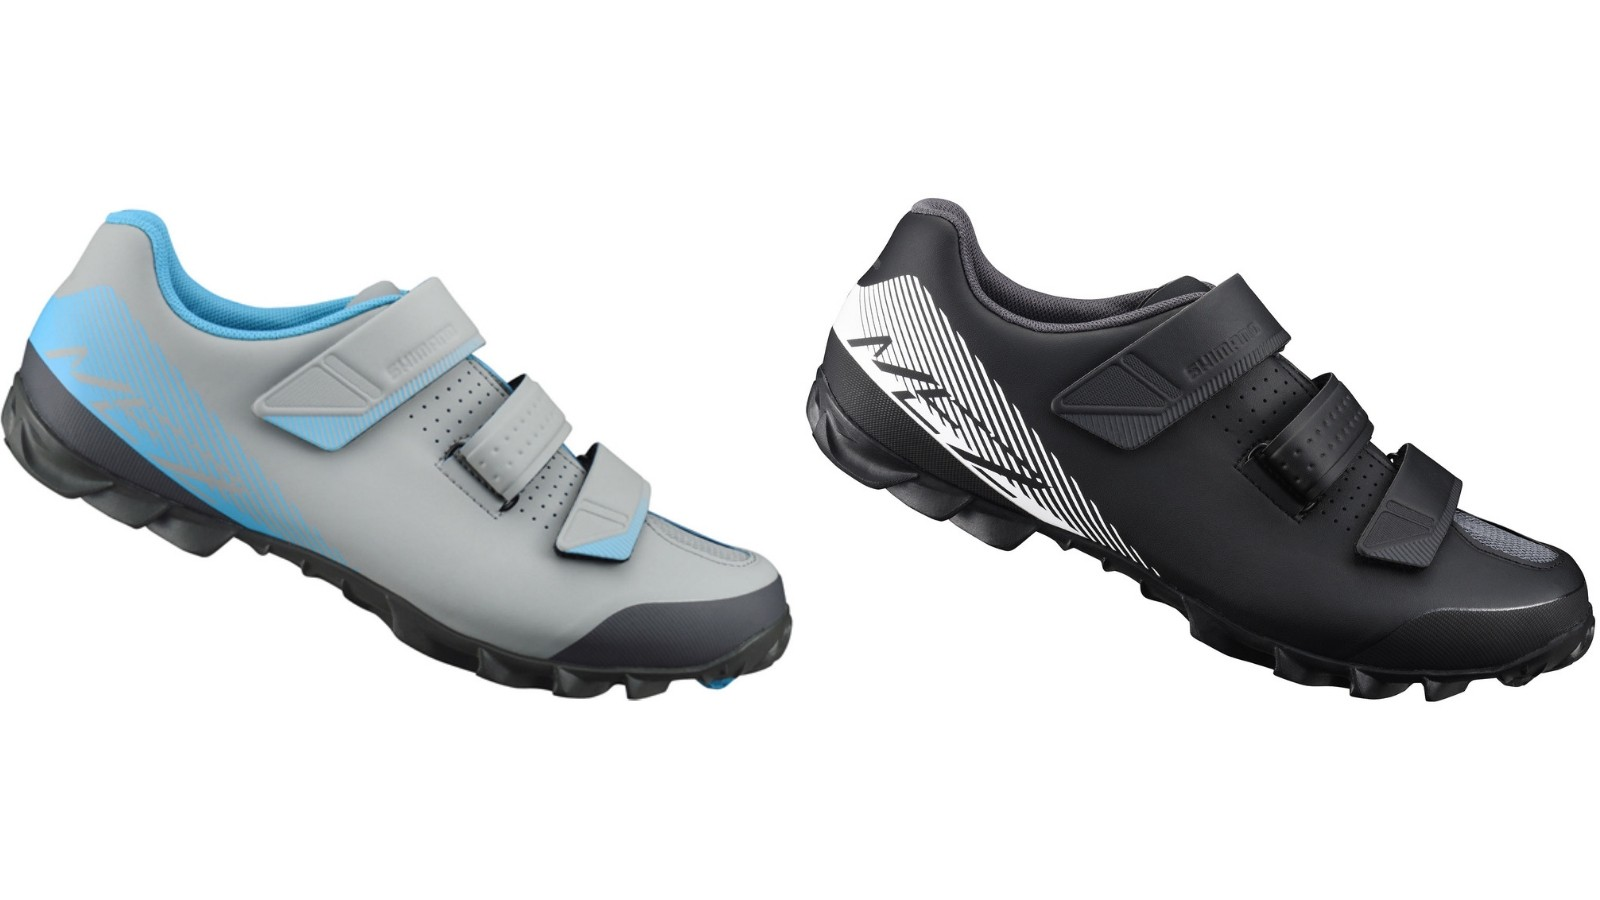 aec2dbec381e Save up to 50% on Shimano ME2 and ME2W MTB shoes on Wiggle right now ...